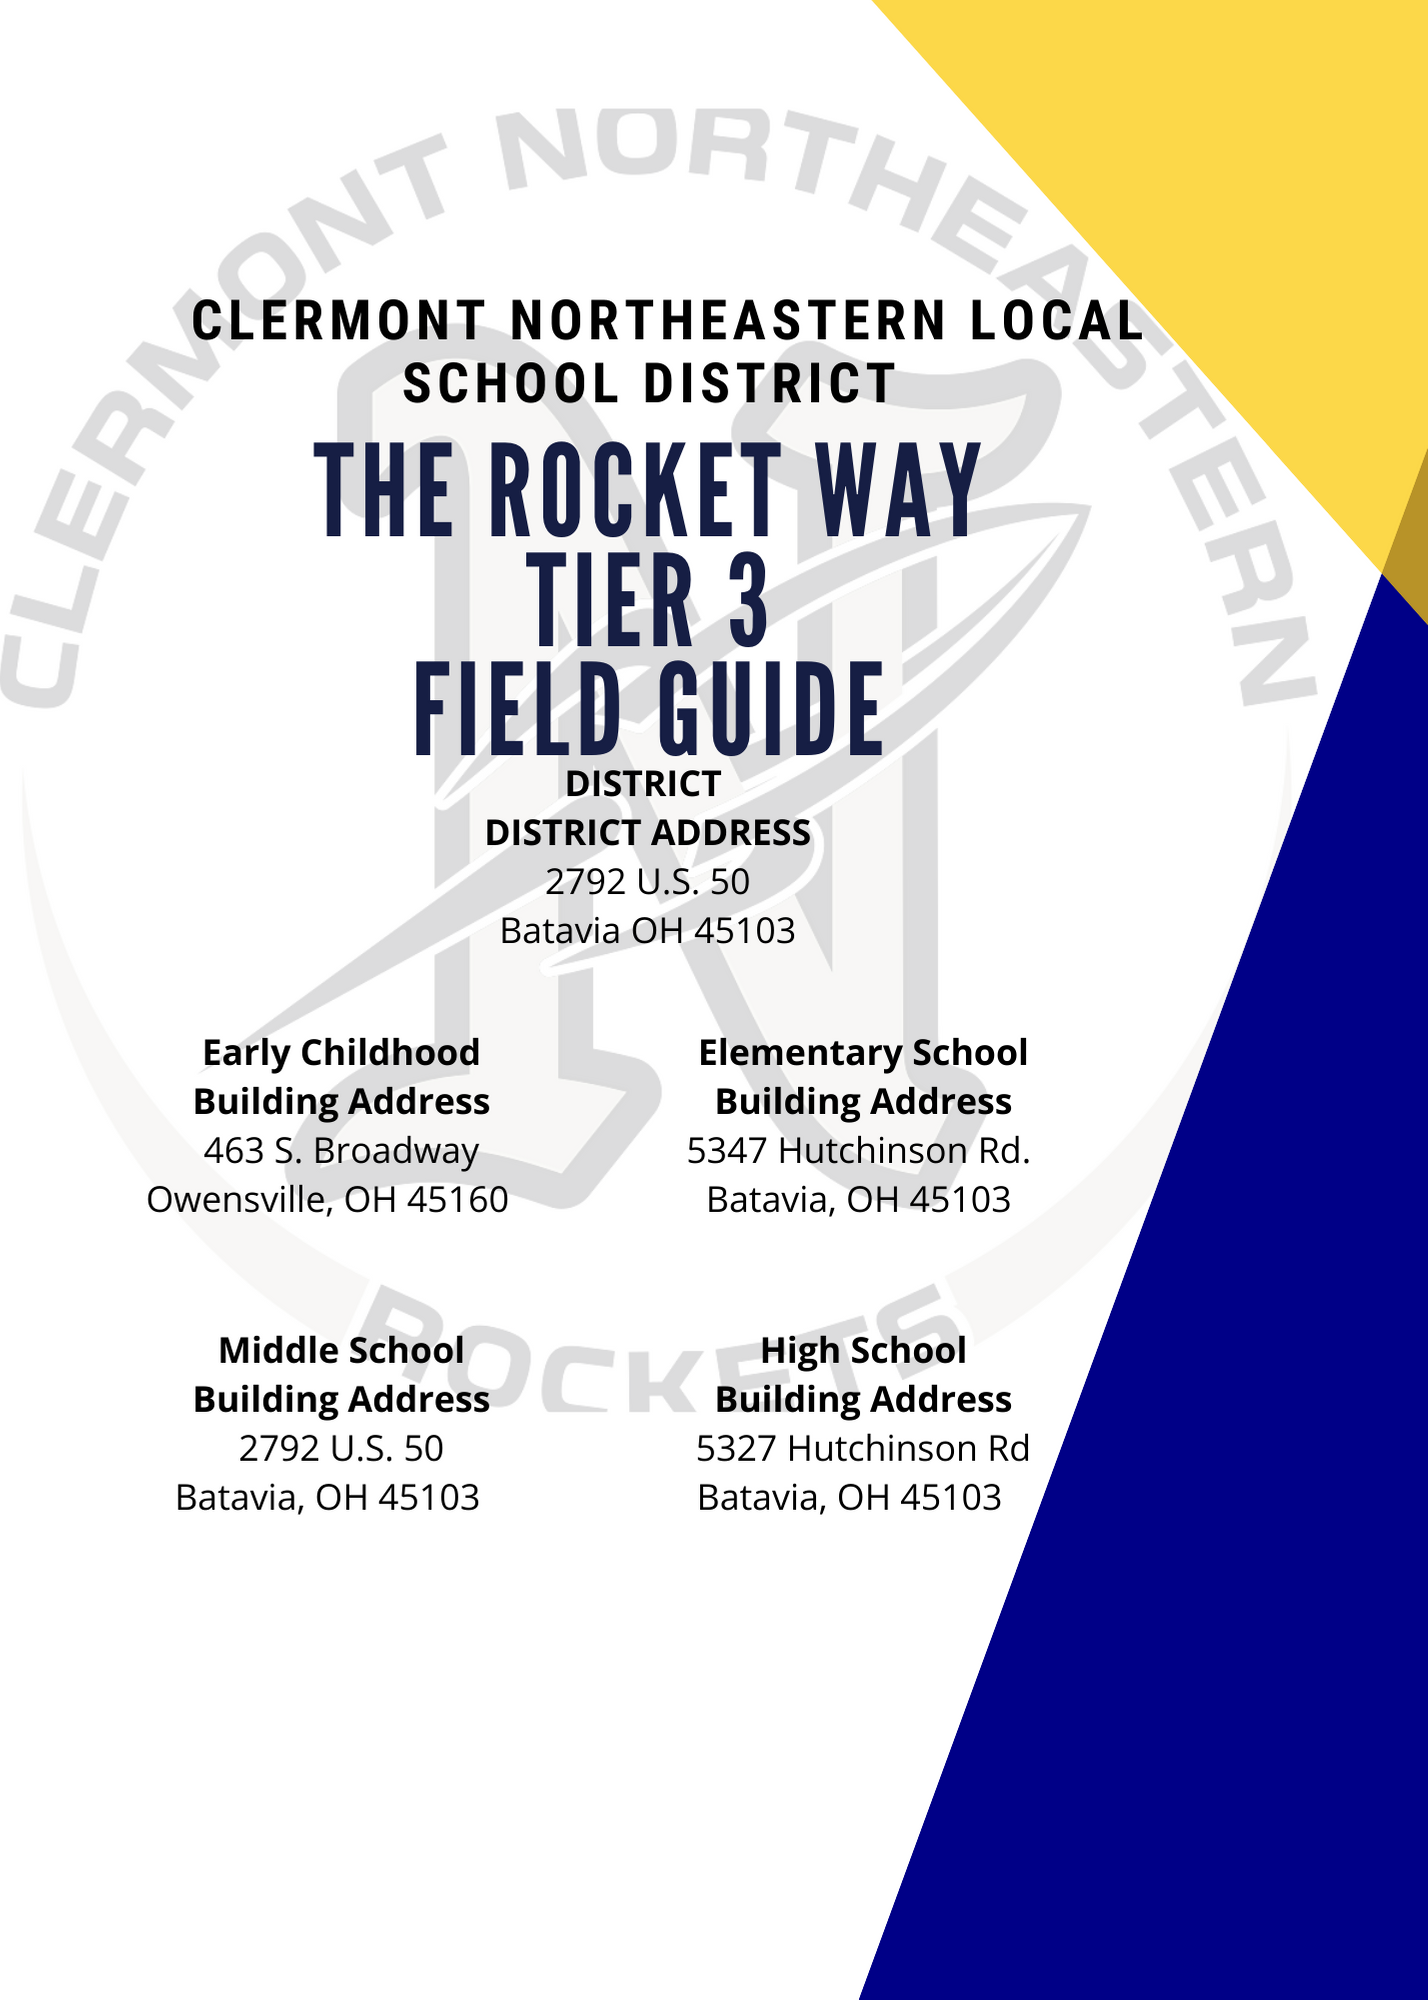 STAFF FIELD GUIDE - TIER 3 - ACADEMIC SCHOOL YEAR 2019 - 2020